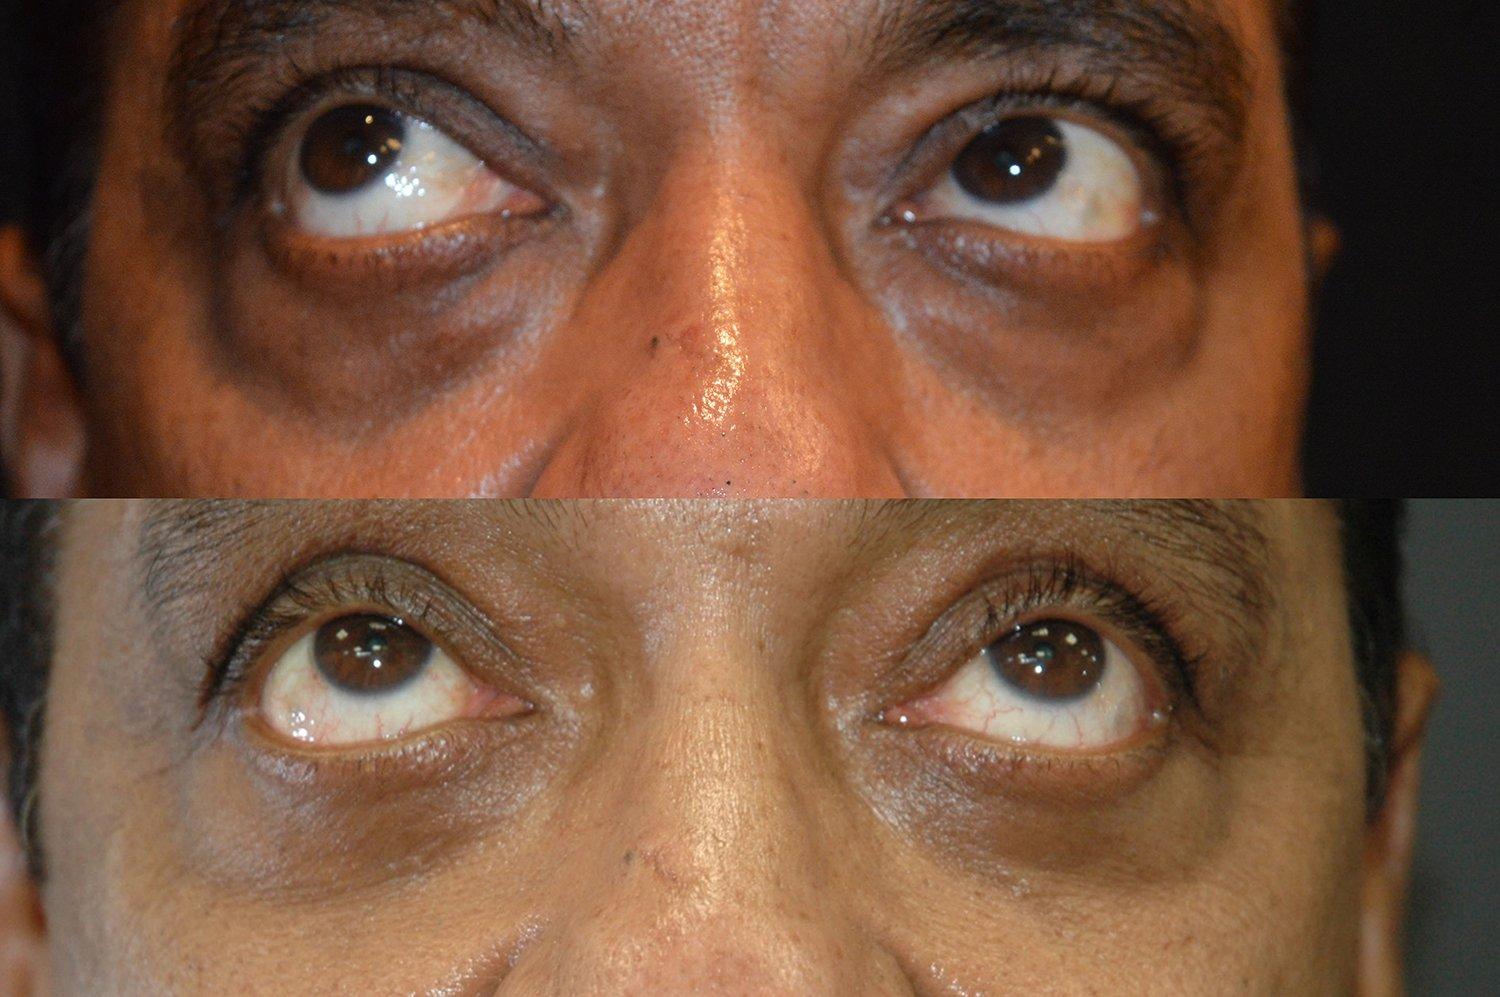 57-year-old lower eyelid transconjunctival bleph w. fat transposition, 2 years after surgery upward gaze